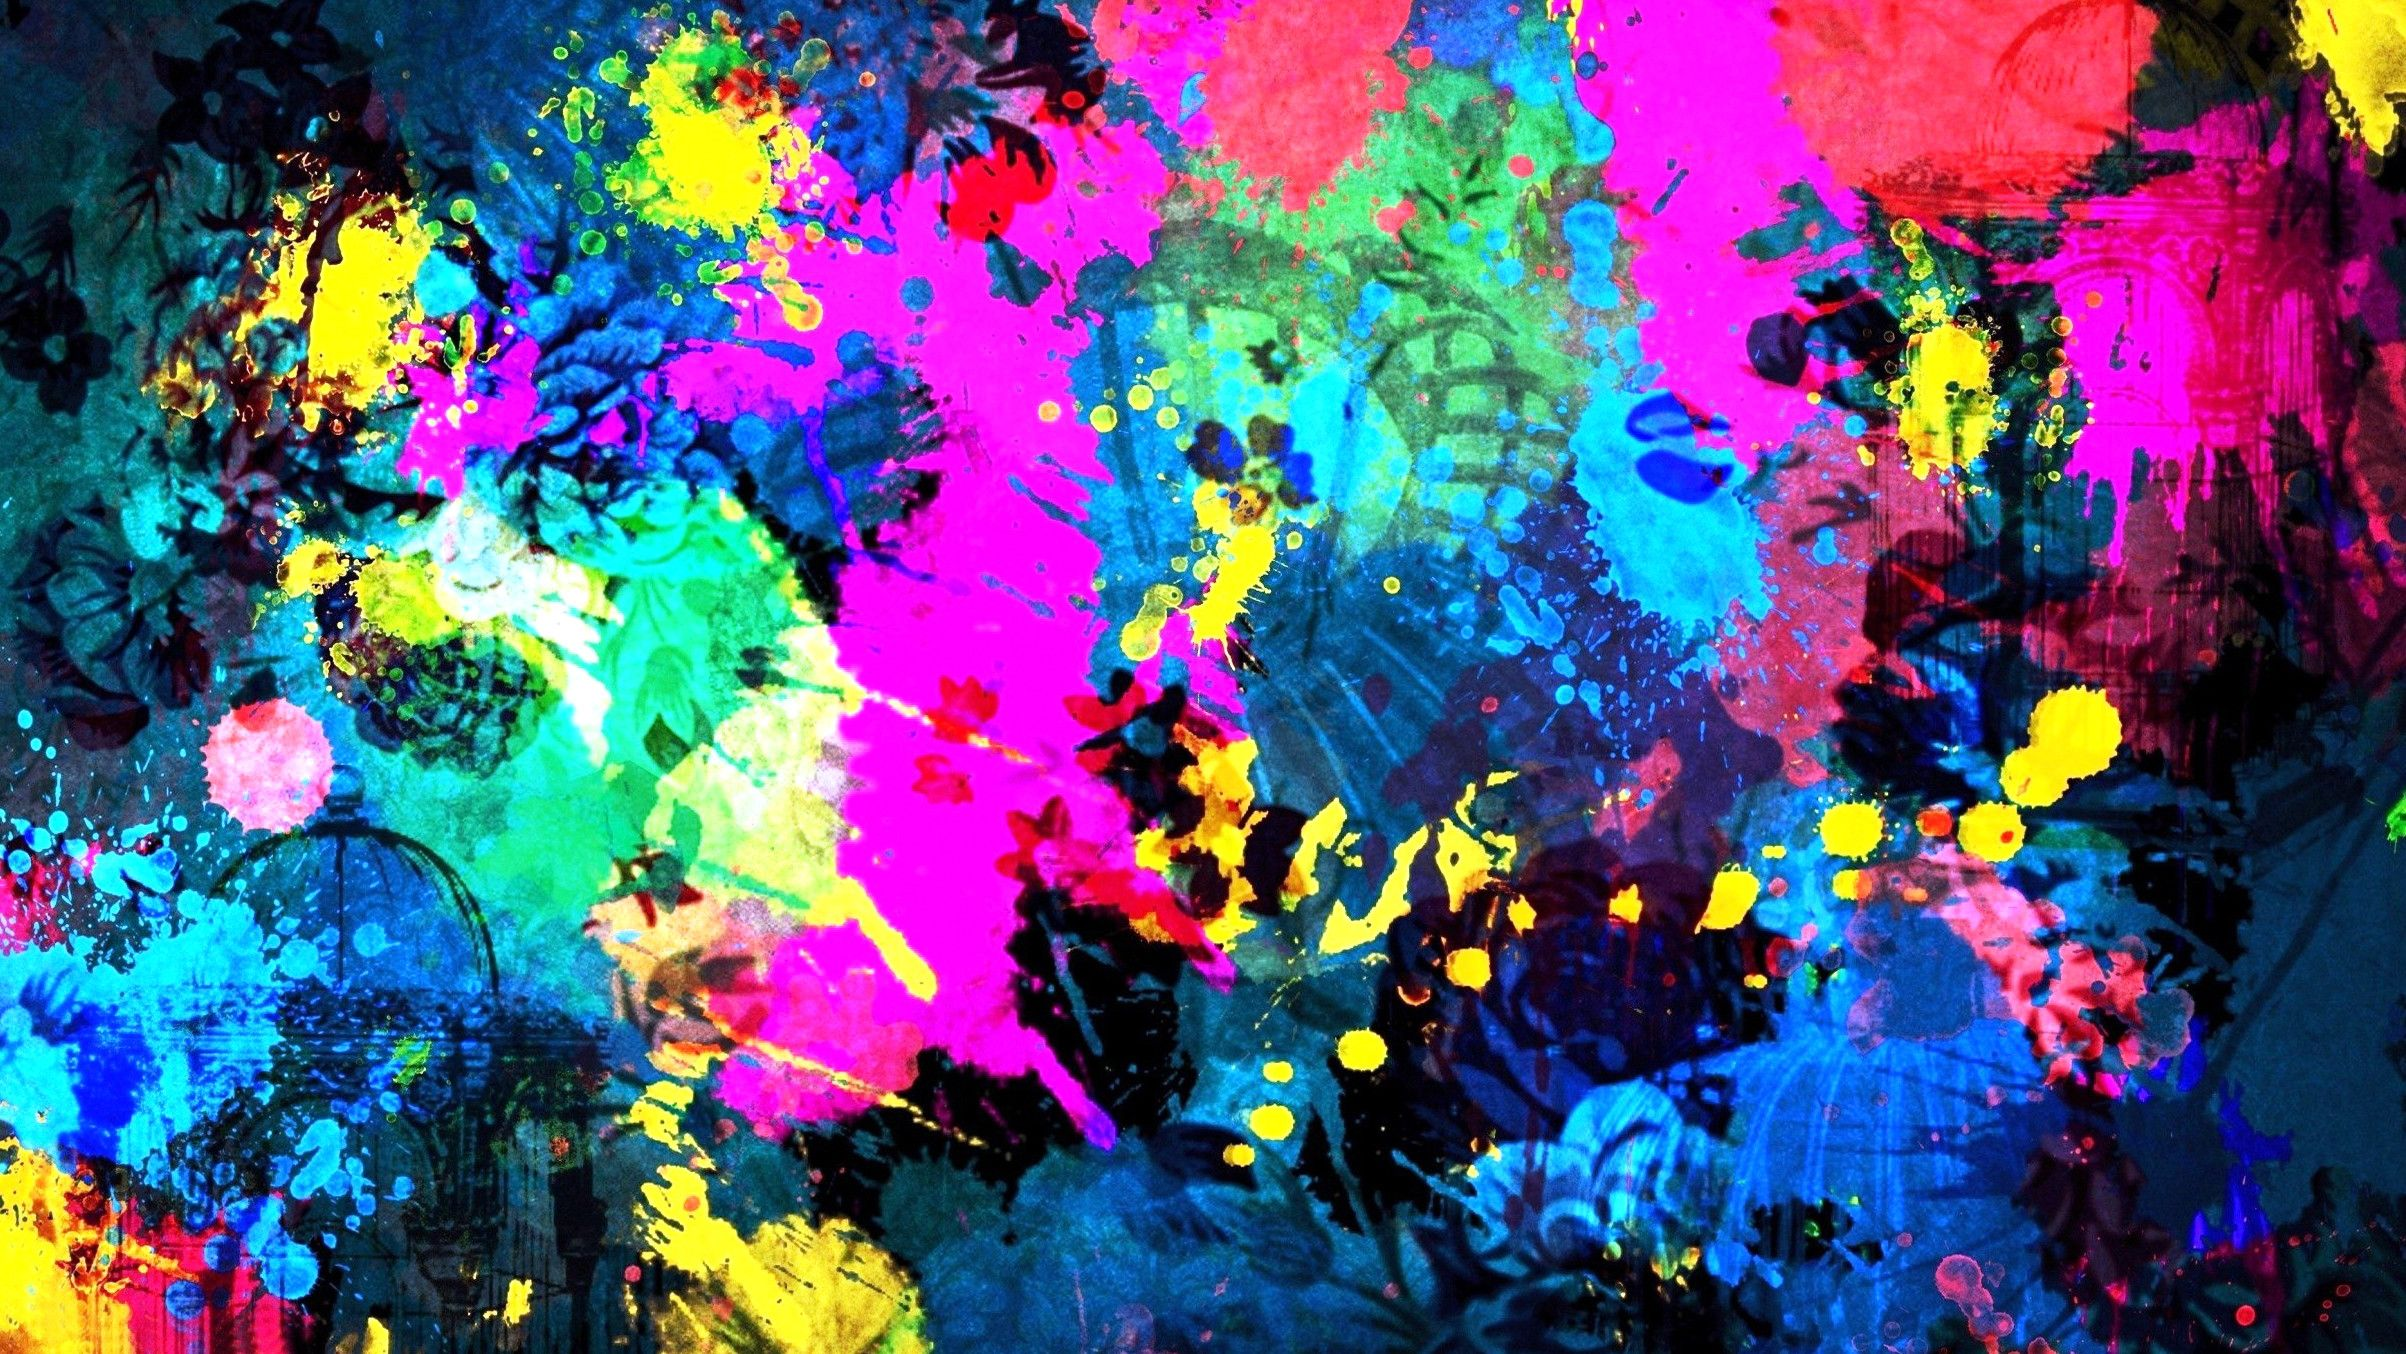 2406x1354 HD, Abstract, Art, Wallpaper, Widescreen, High